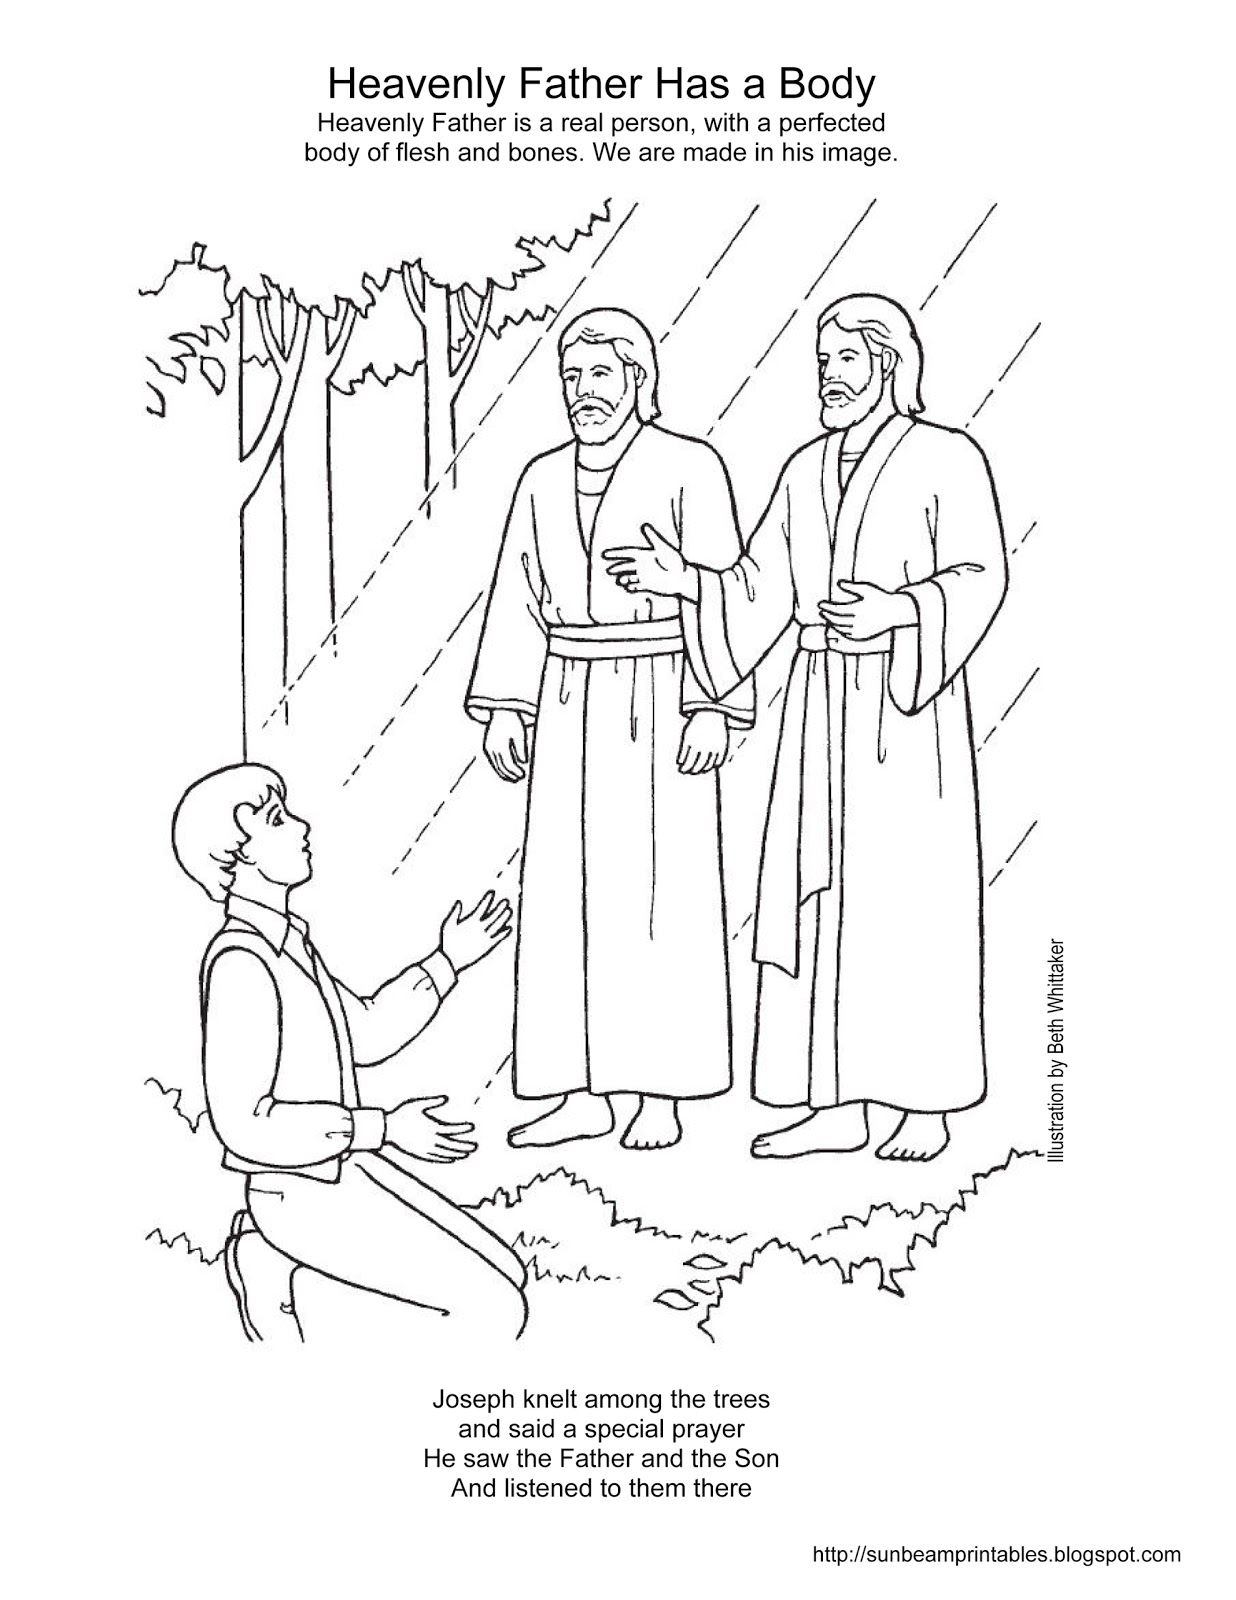 Sunbeam Printables: Coloring Page for Lesson 2: Heavenly Father Has ...